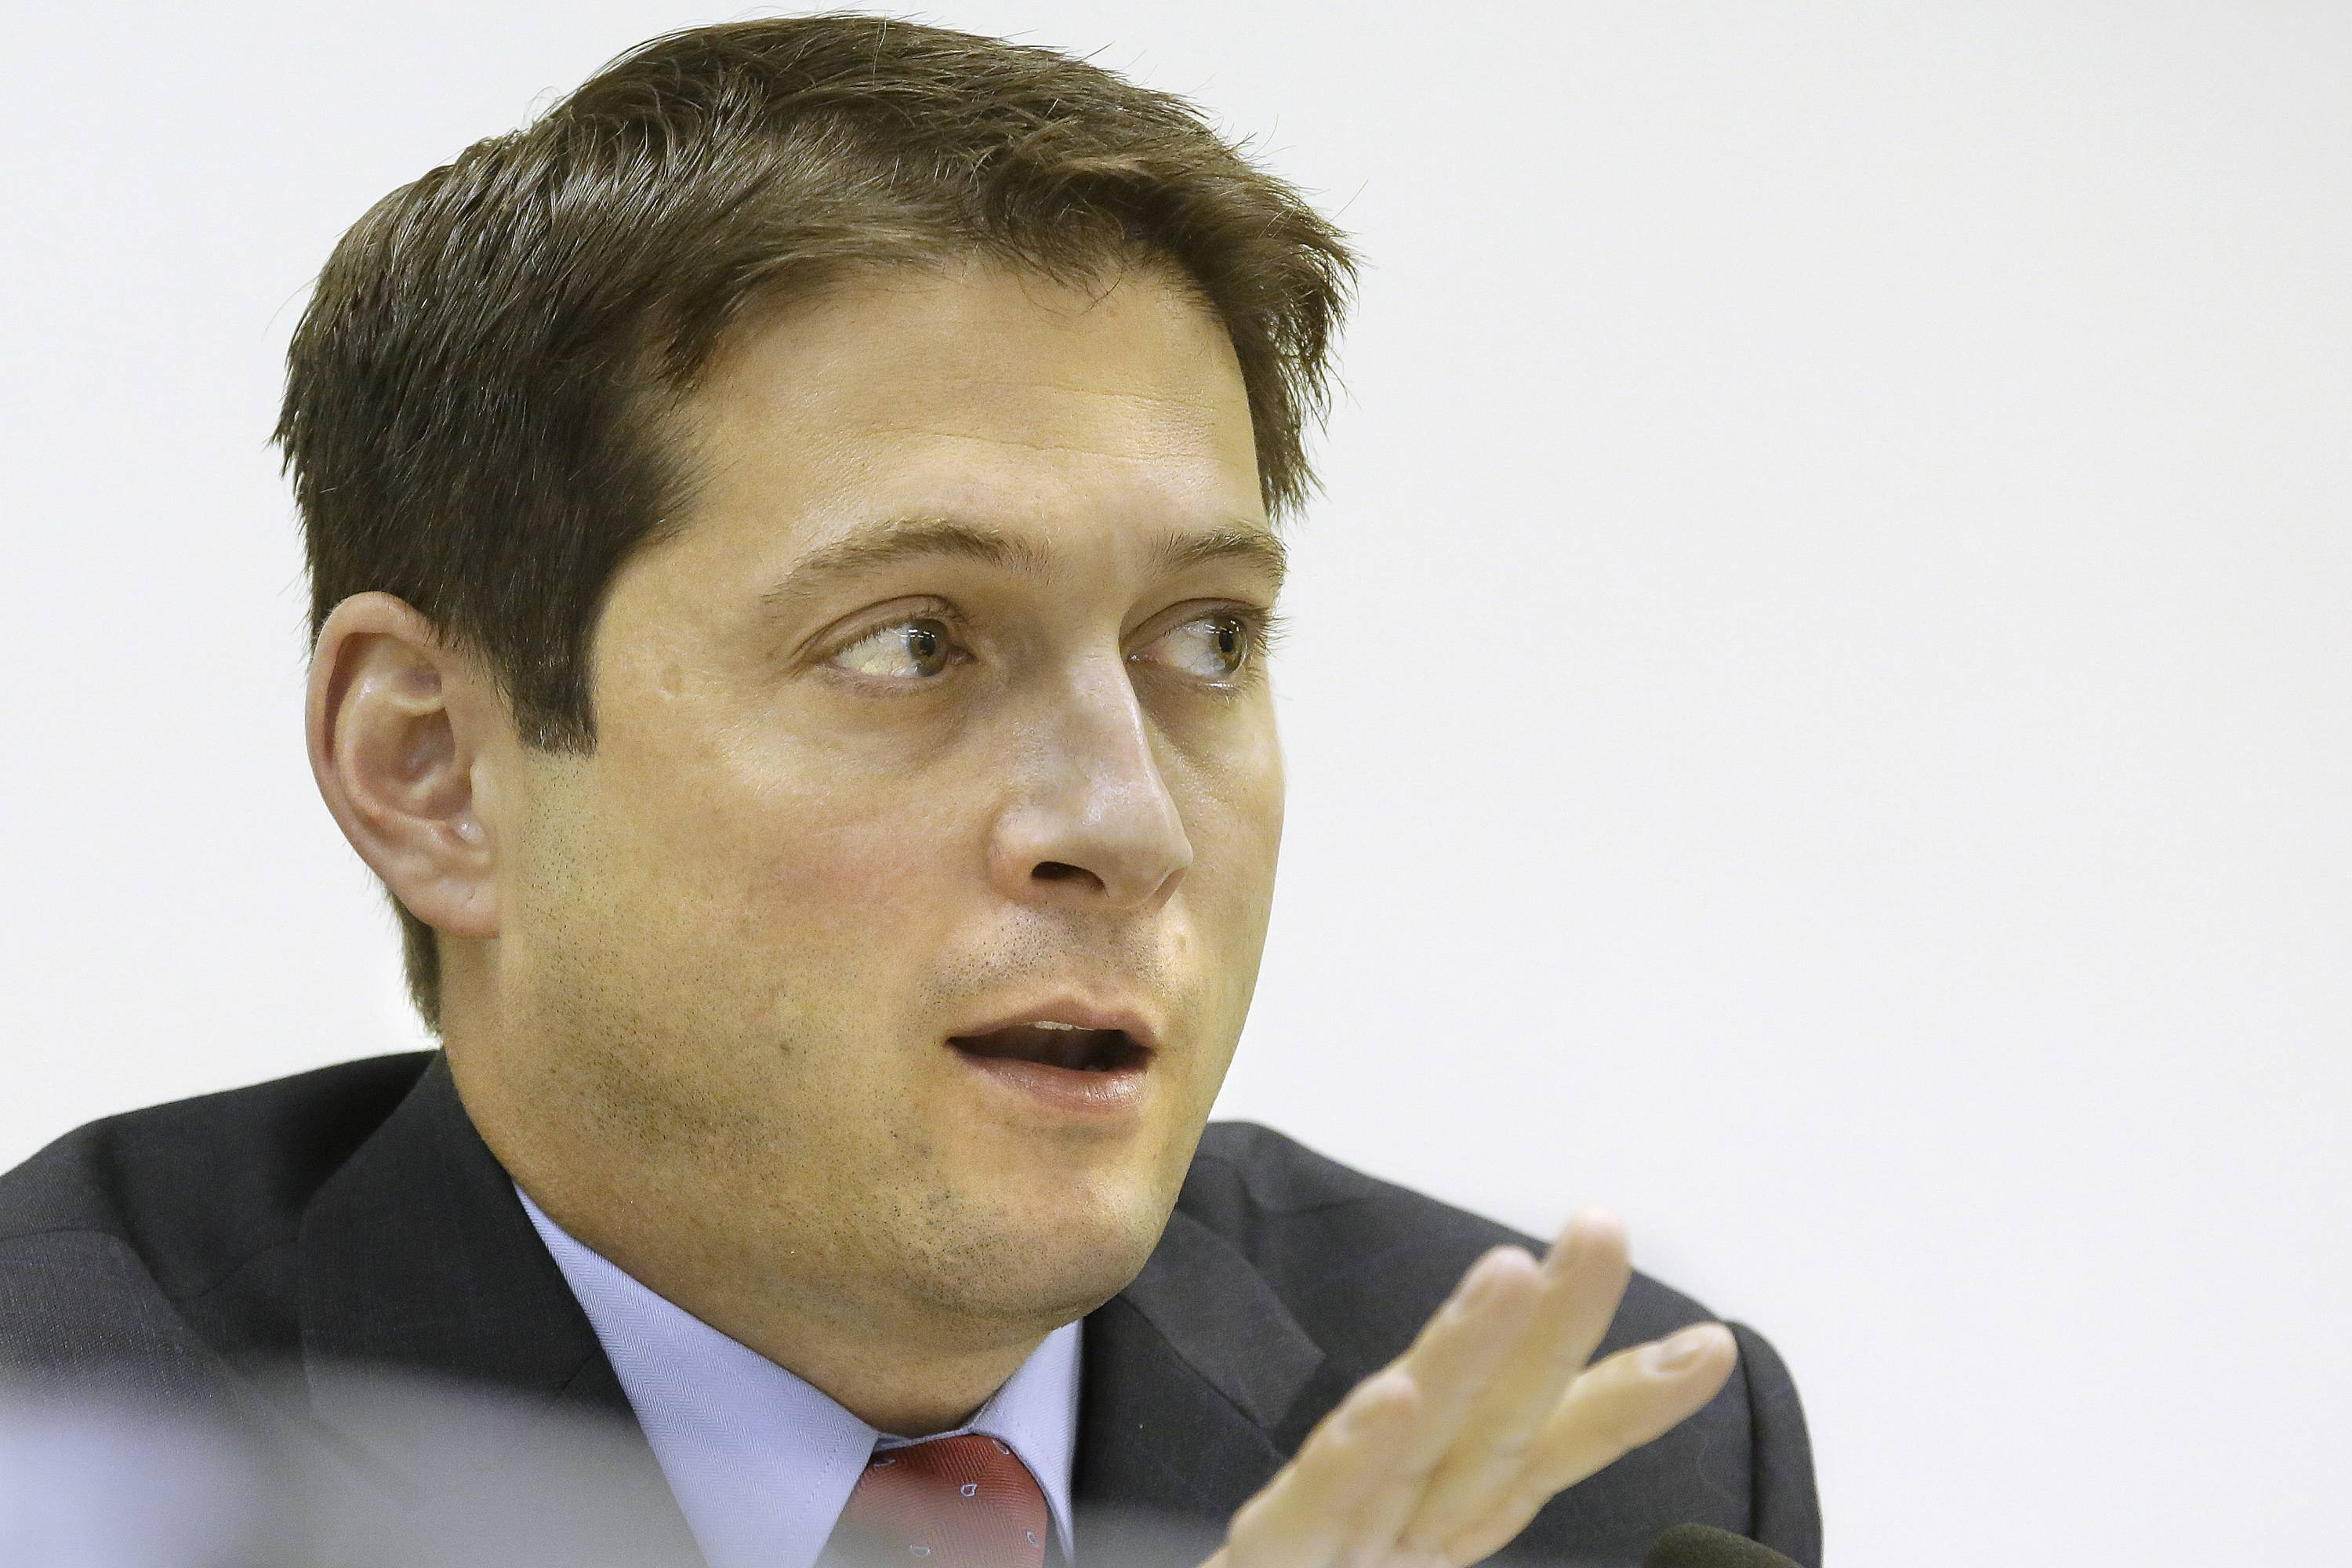 State Sen. Jason Barickman, a Bloomington Republican, is a co-chairman of the Legislative Audit Commission that voted Monday to subpoena seven former state officials about the Neighborhood Recovery Initiative, which was blasted in a state audit earlier this year for mismanagement and misspending.